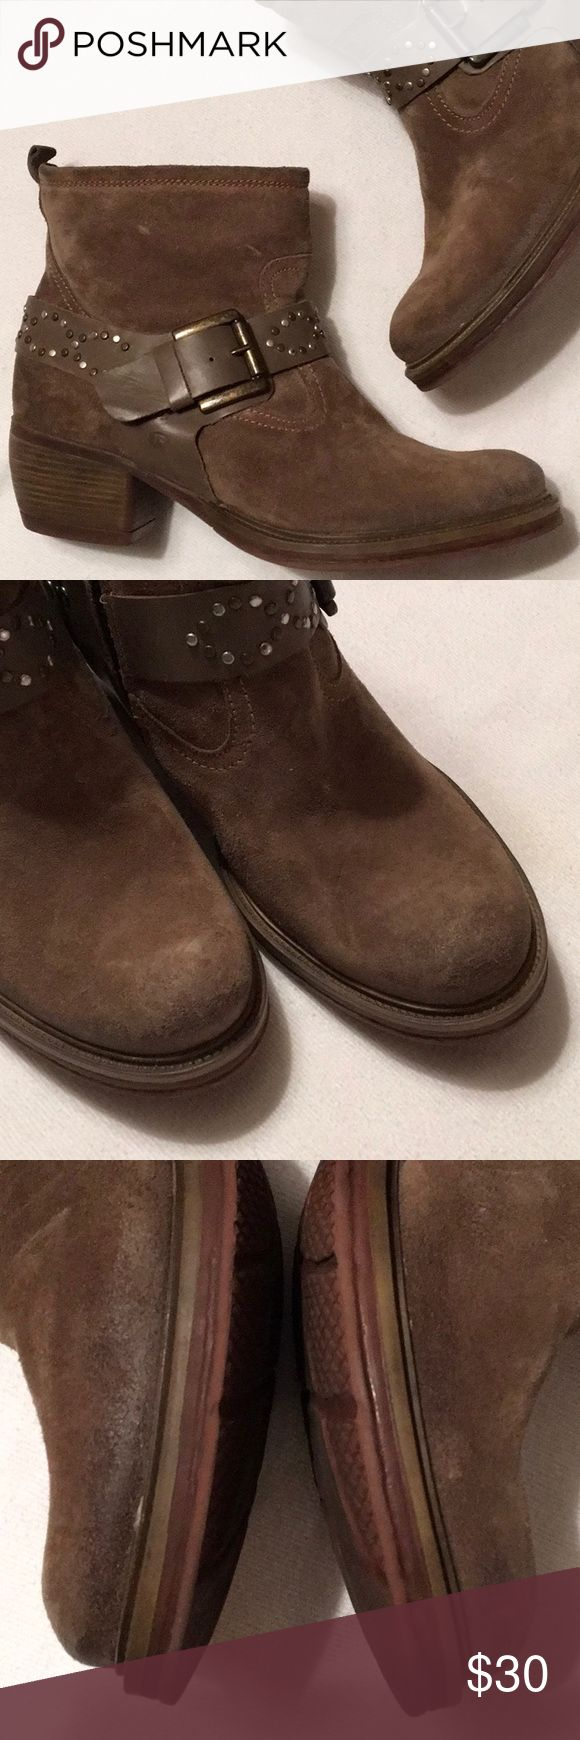 """Josef Seibel Brown Suede Ankle Boots sz 10 Great looking, well made boots in excellent condition.  Some scuffing at toes. Otherwise, solid and clean inside and out.  Zippers, pulls, straps and buckles excellent.  Zero heel or sole wear.  Heel 2"""".  Height 6"""".  Euro sz 41. Josef Seibel Shoes Ankle Boots & Booties"""